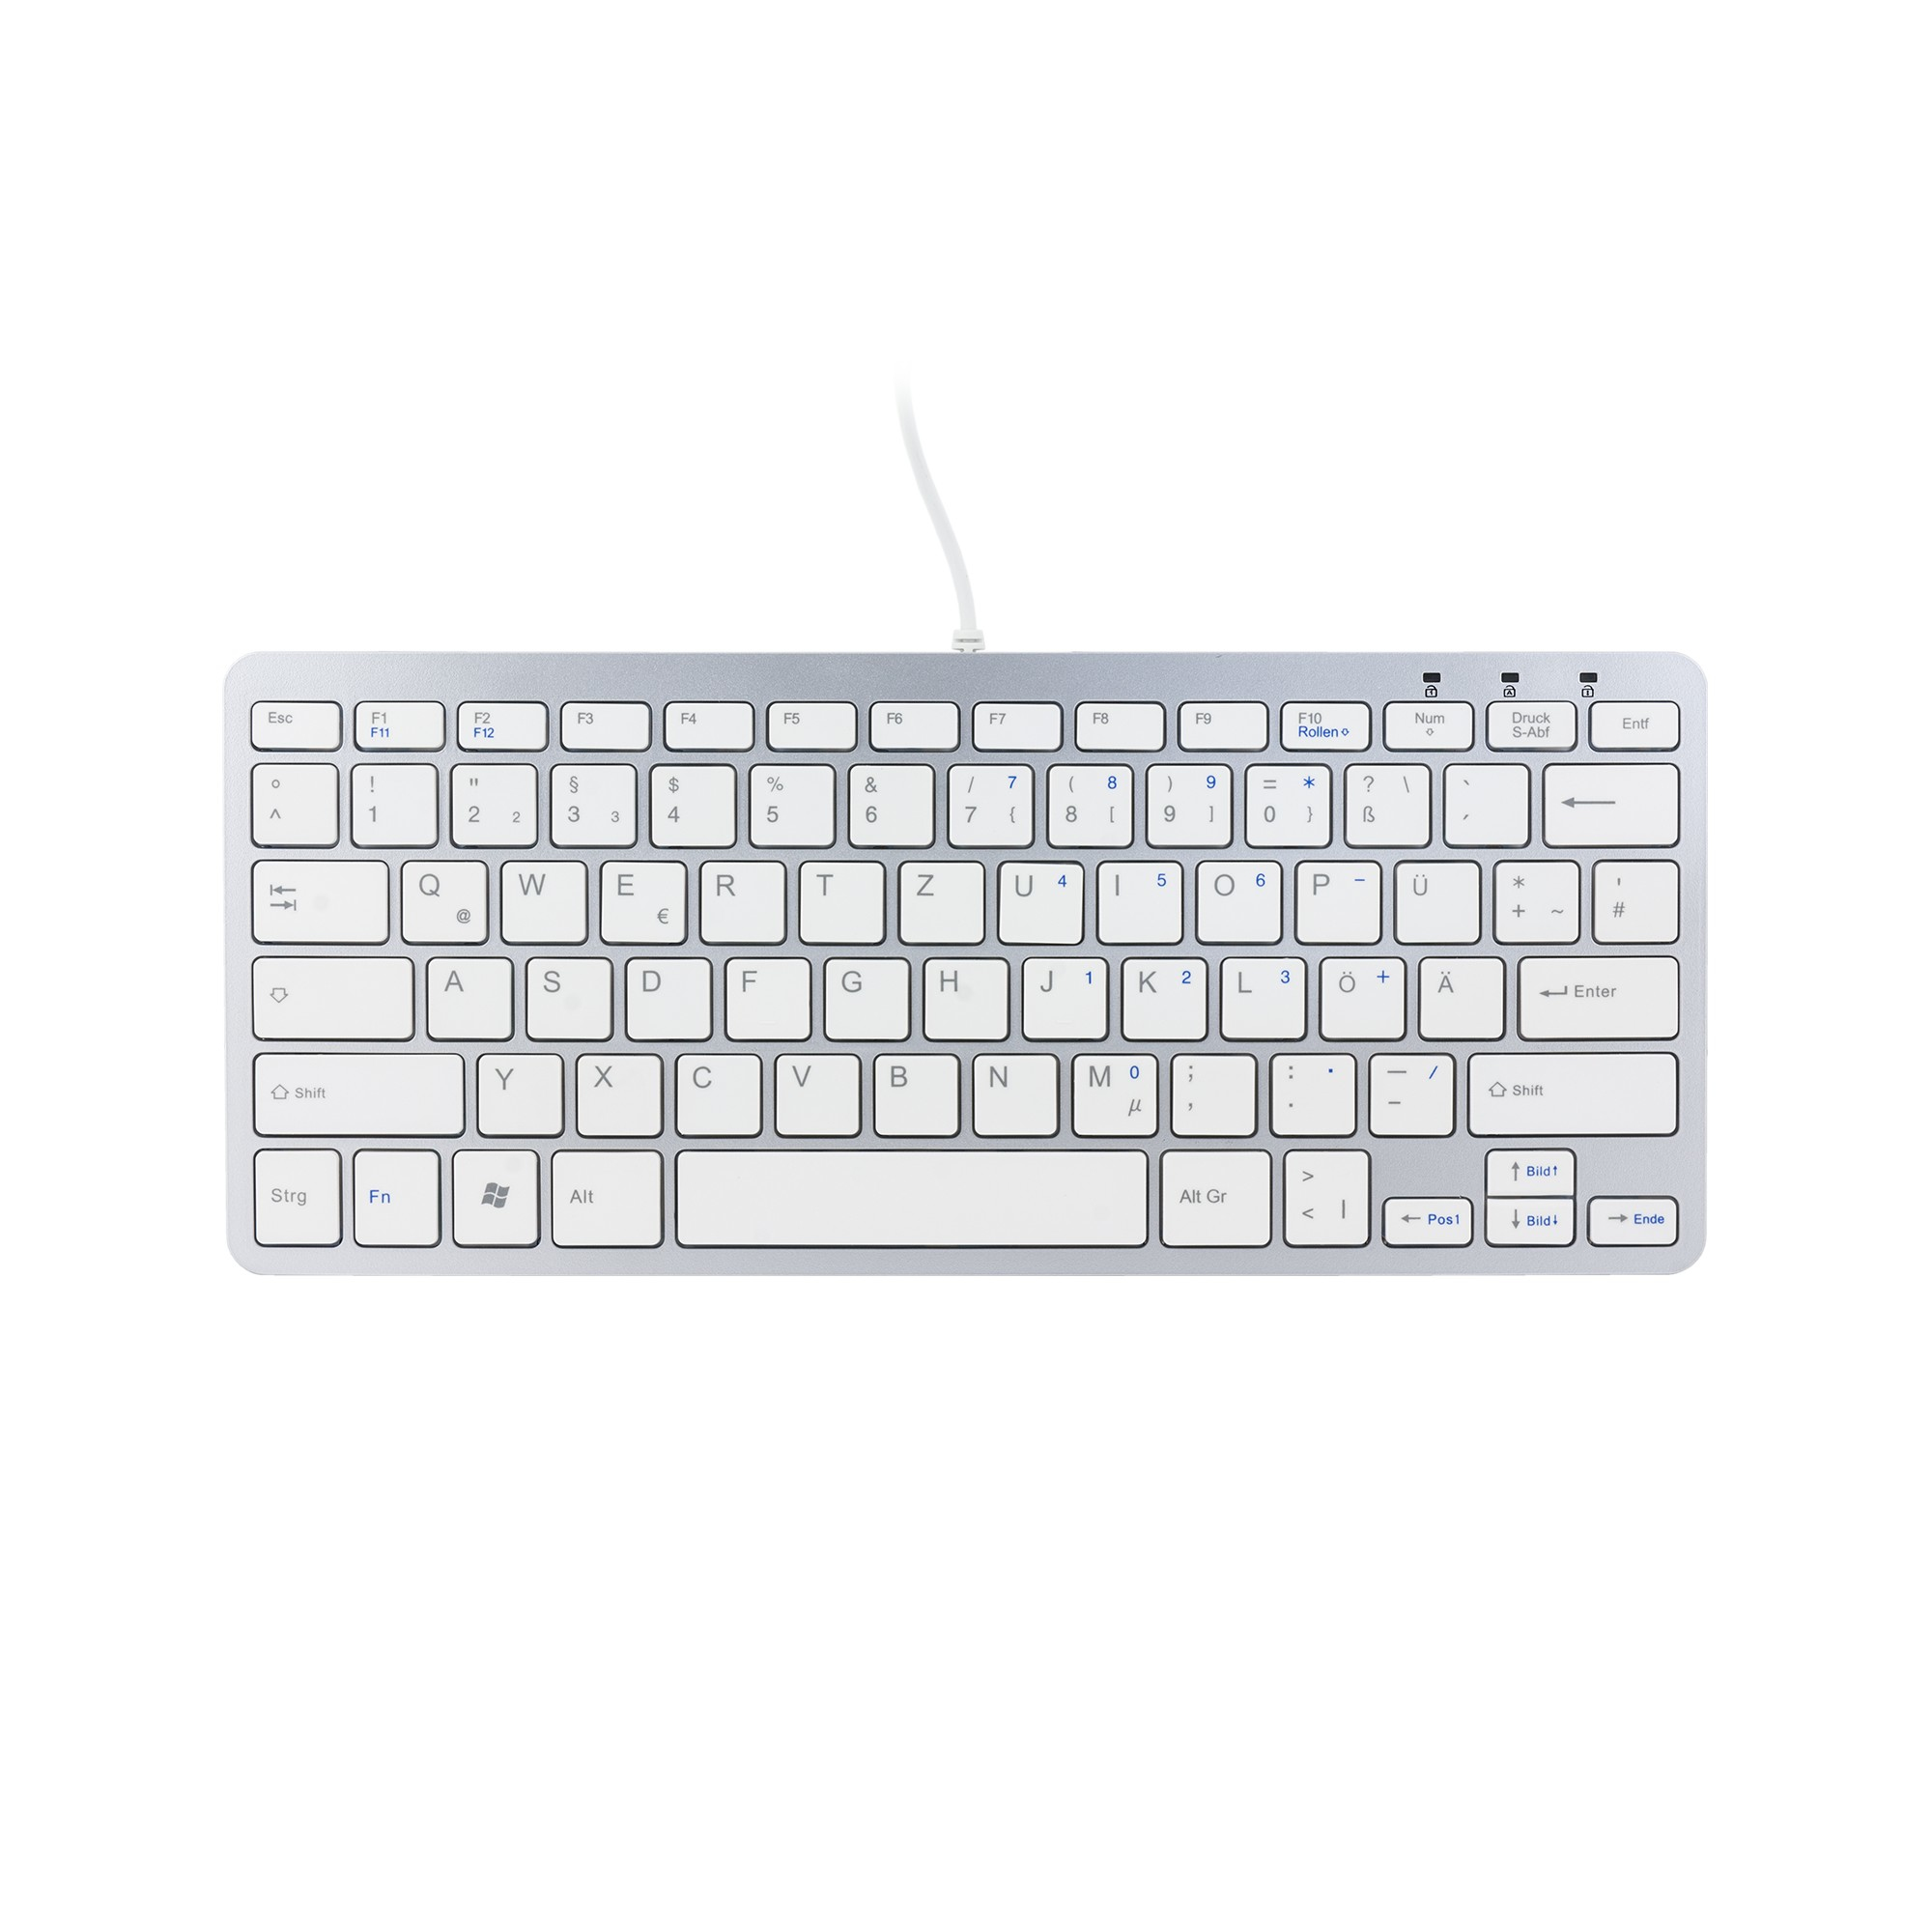 R-GO TOOLS RGOECQZW COMPACT KEYBOARD, QWERTZ (DE), WHITE, WIRED